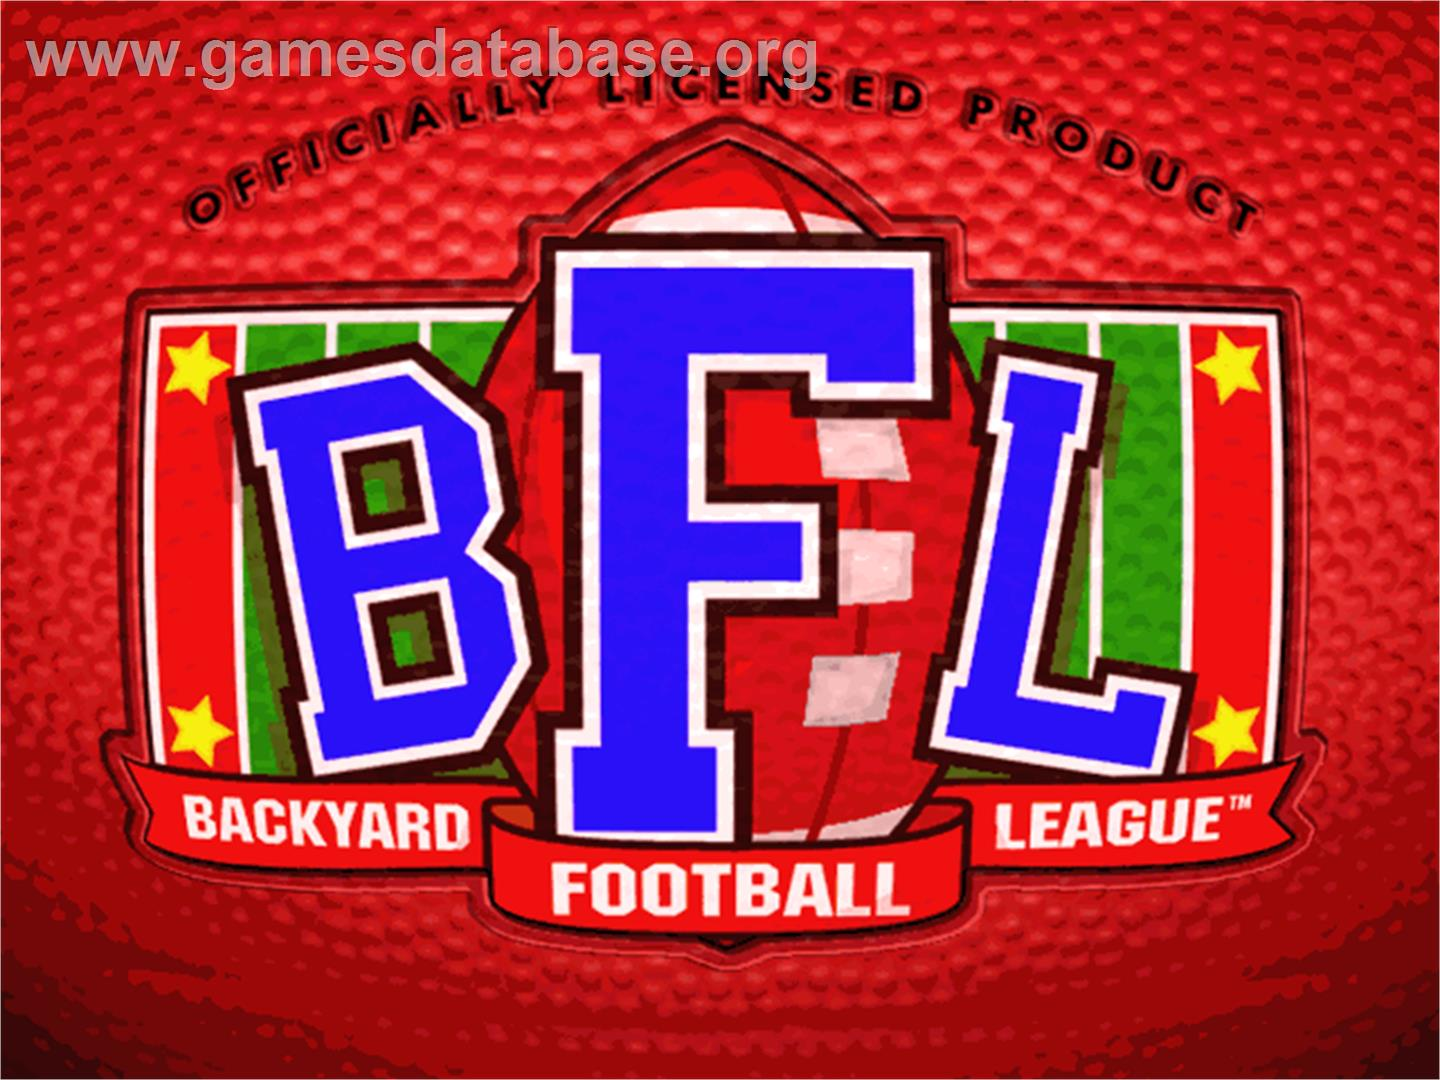 backyard football league logo from backyard football game sports